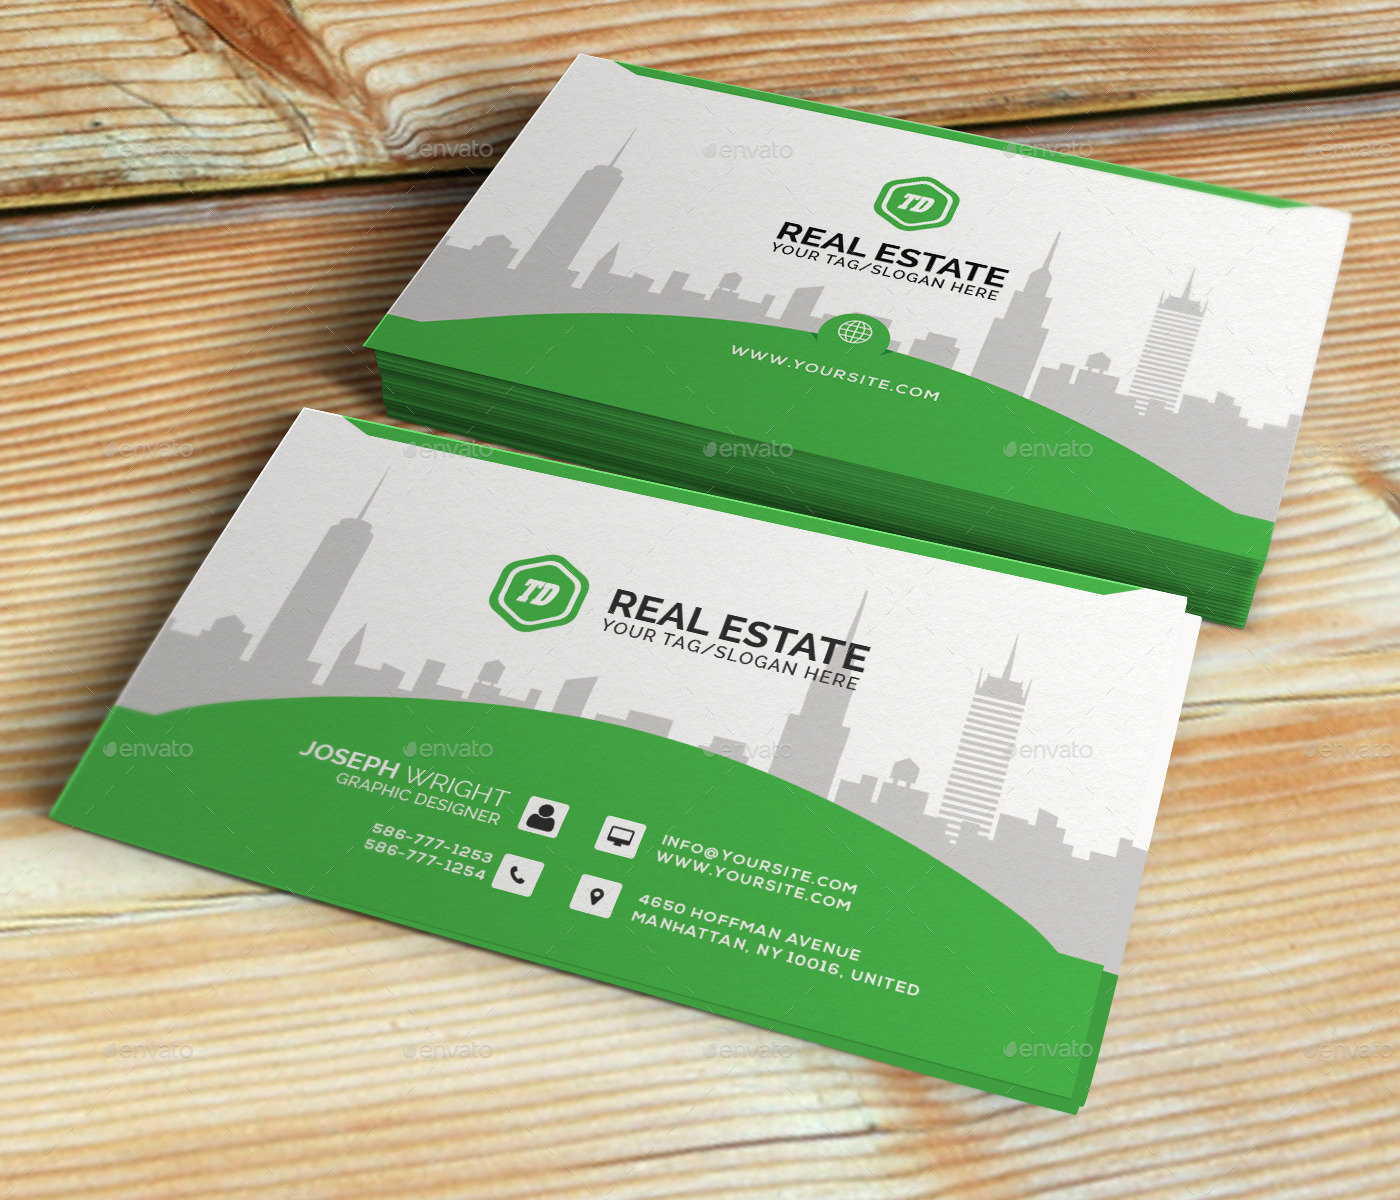 Real Estate Business Card Template By Themedesk GraphicRiver - Real estate business card templates